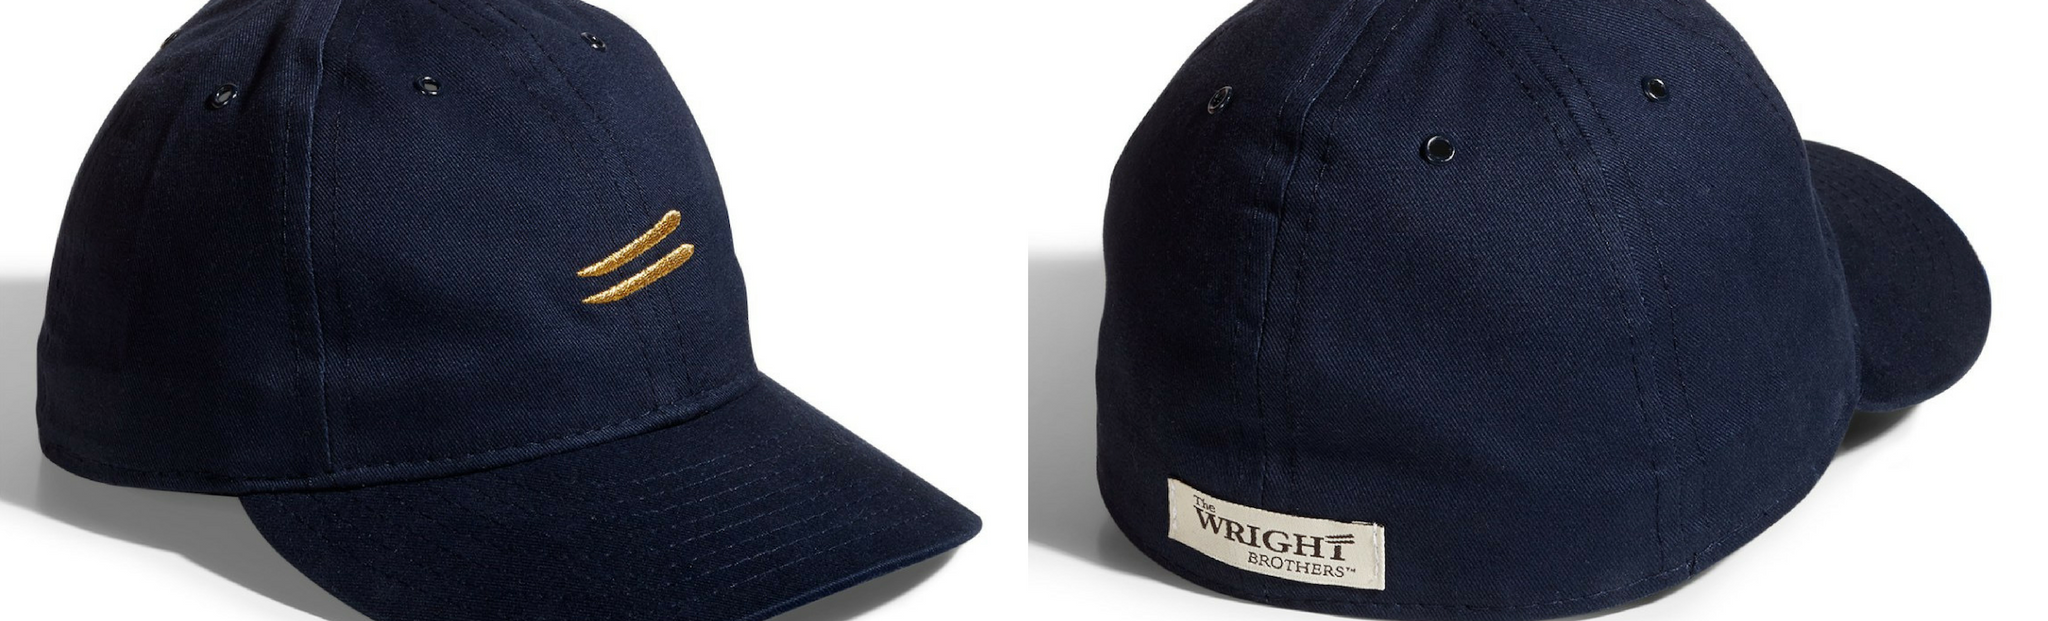 590ec7b8f89 The Wright Brothers Exclusively Authorized Official Products